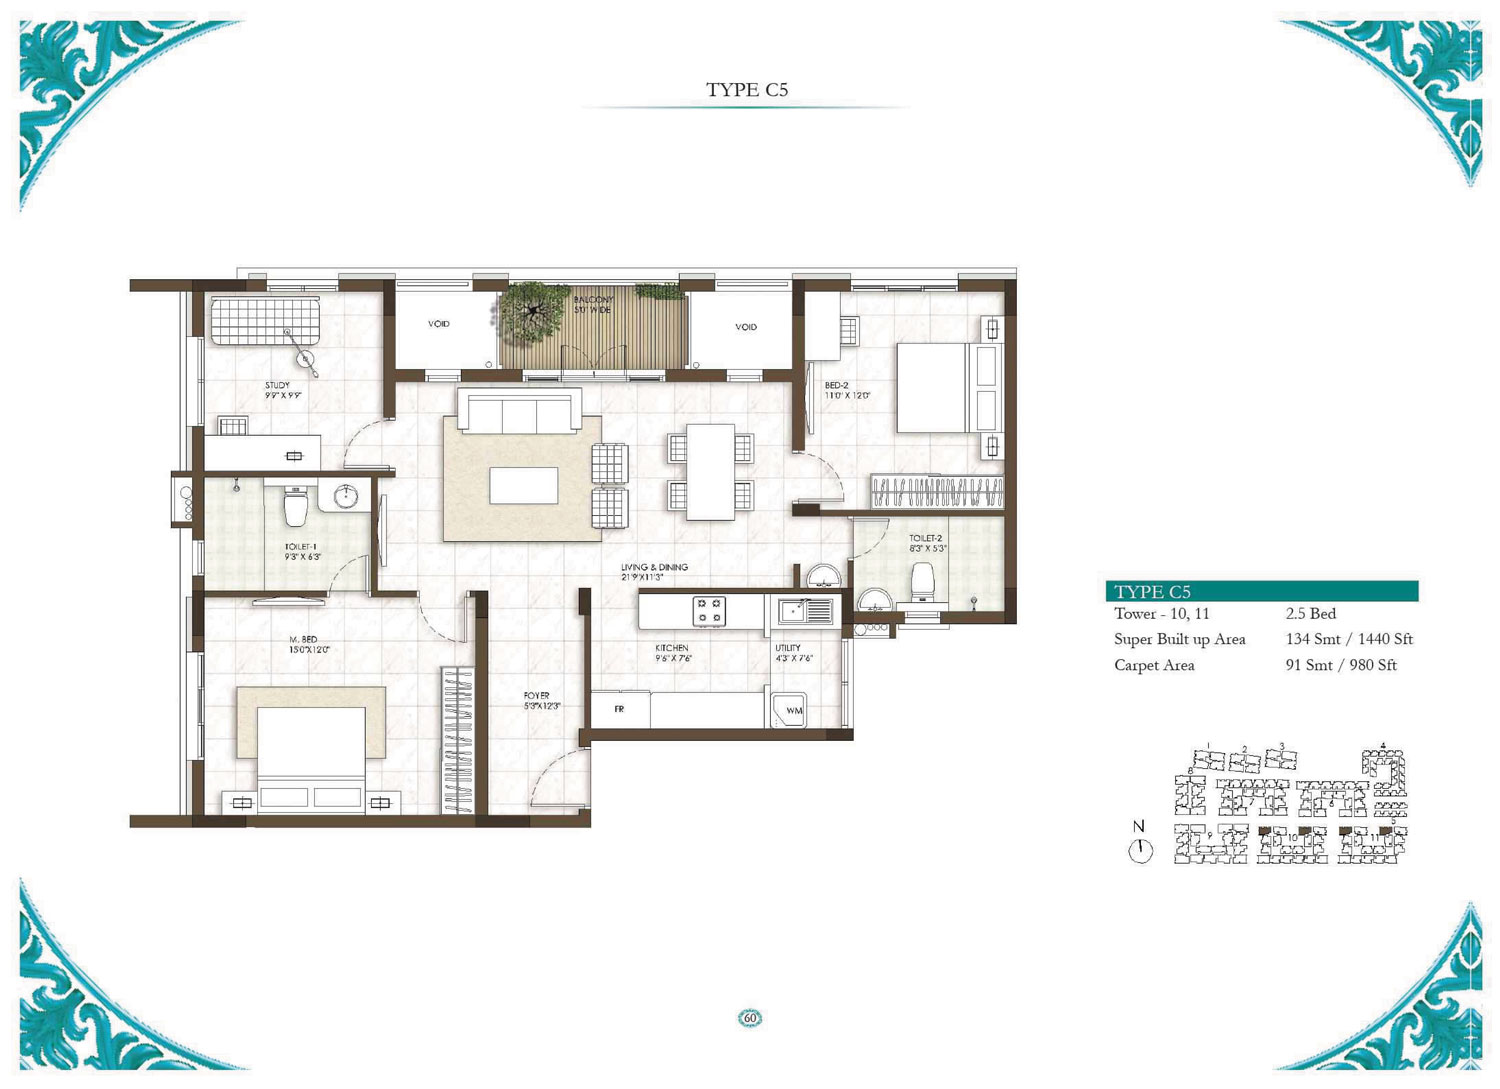 Type C5 - 2.5 Bed - 1440 Sq Ft